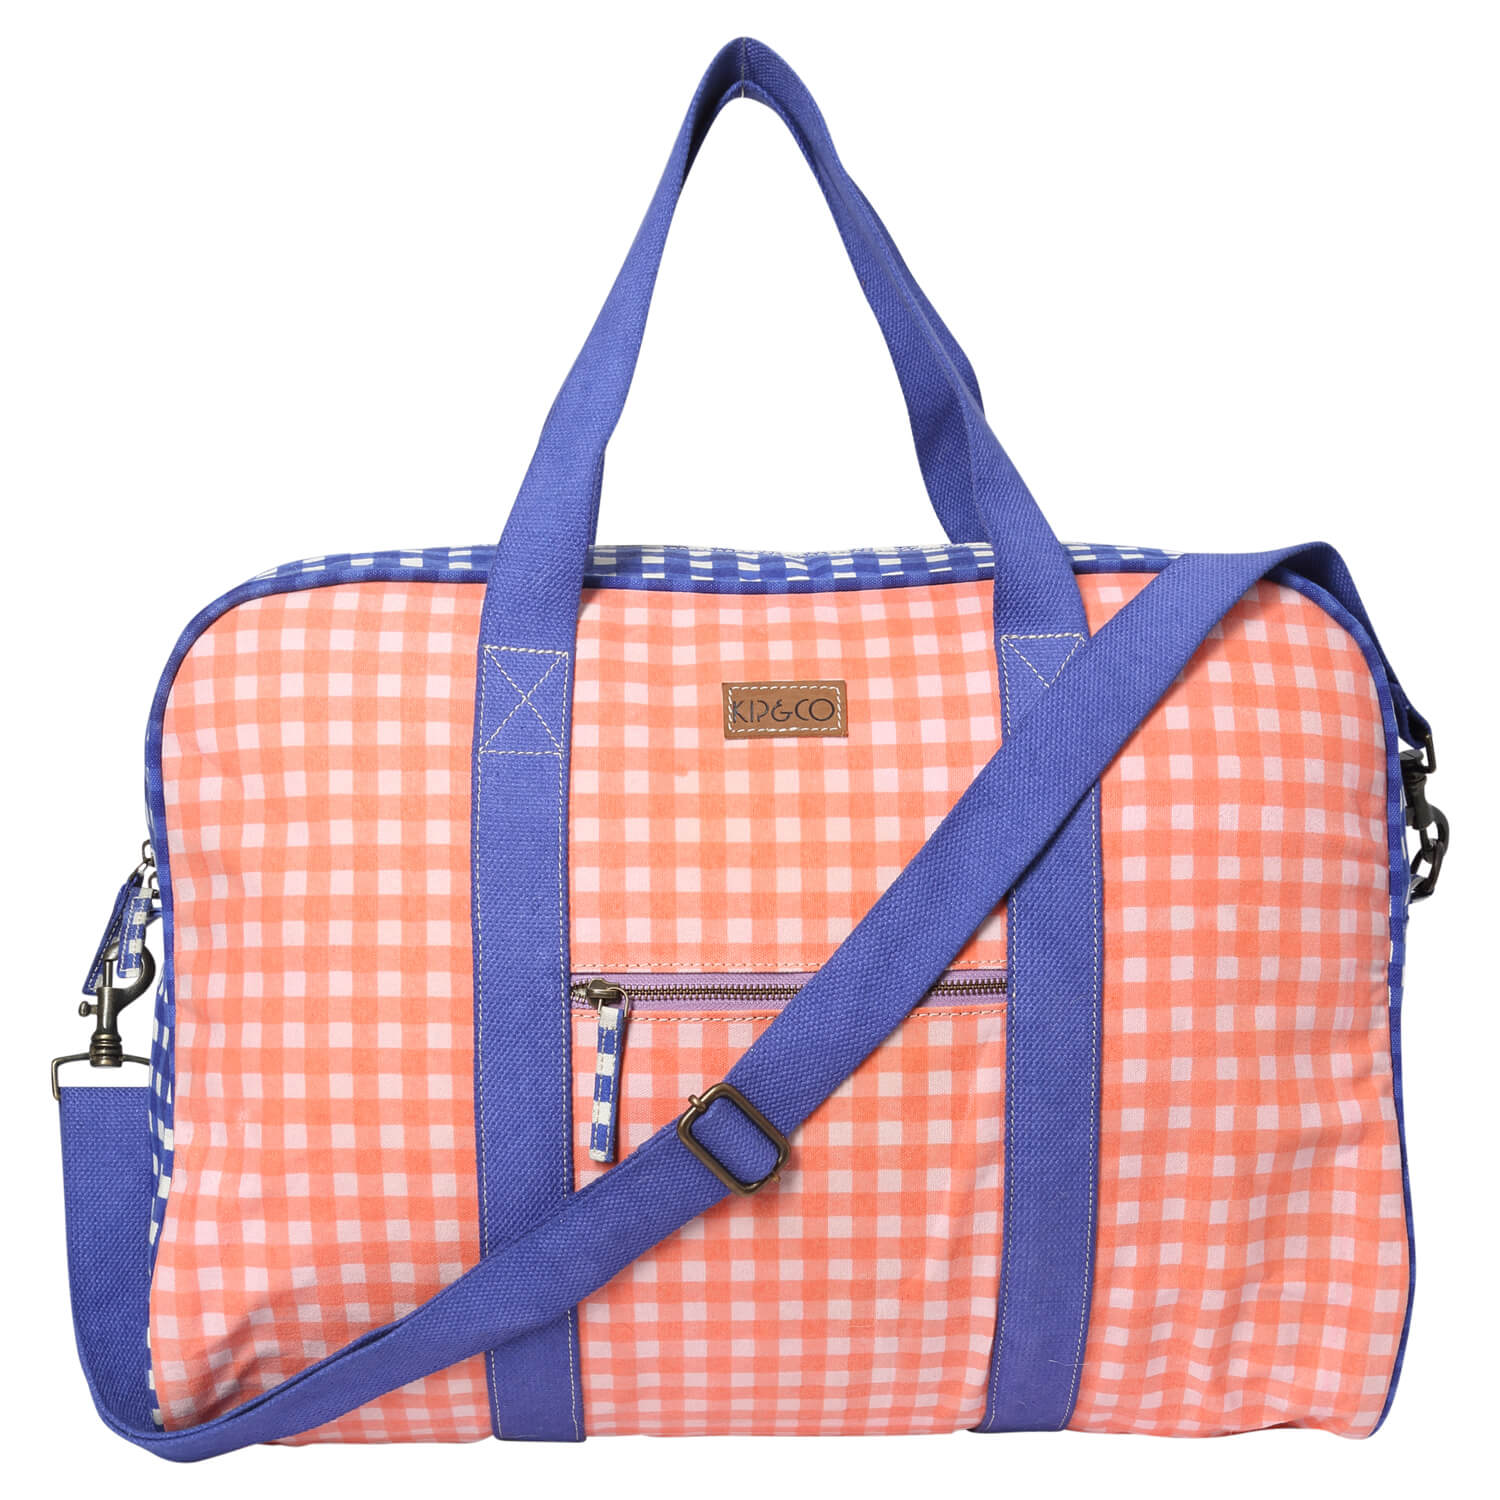 Duffle bag - Gingham Blue and Pink